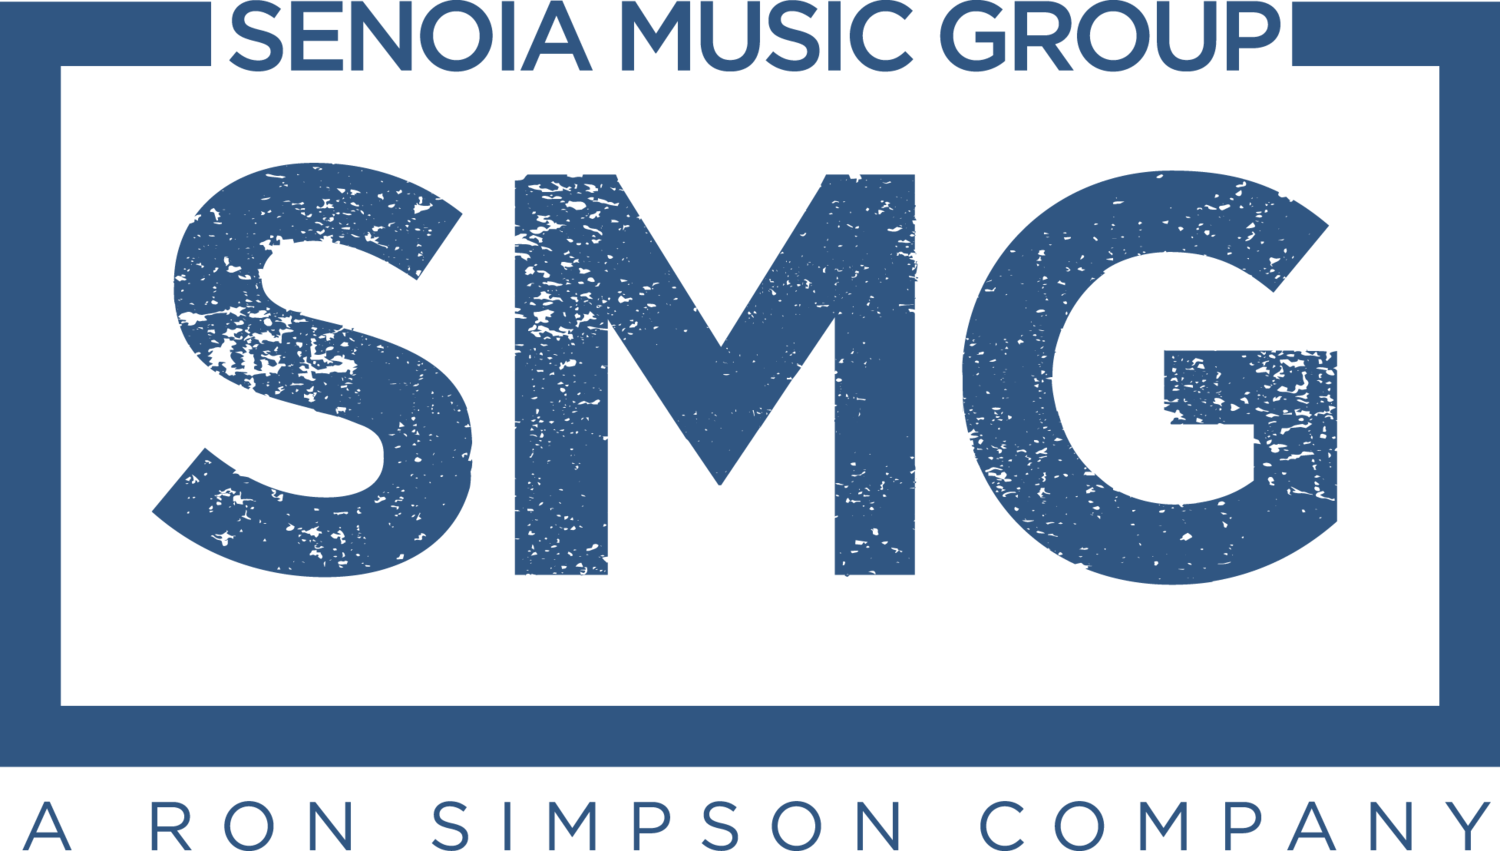 Senoia Music Group